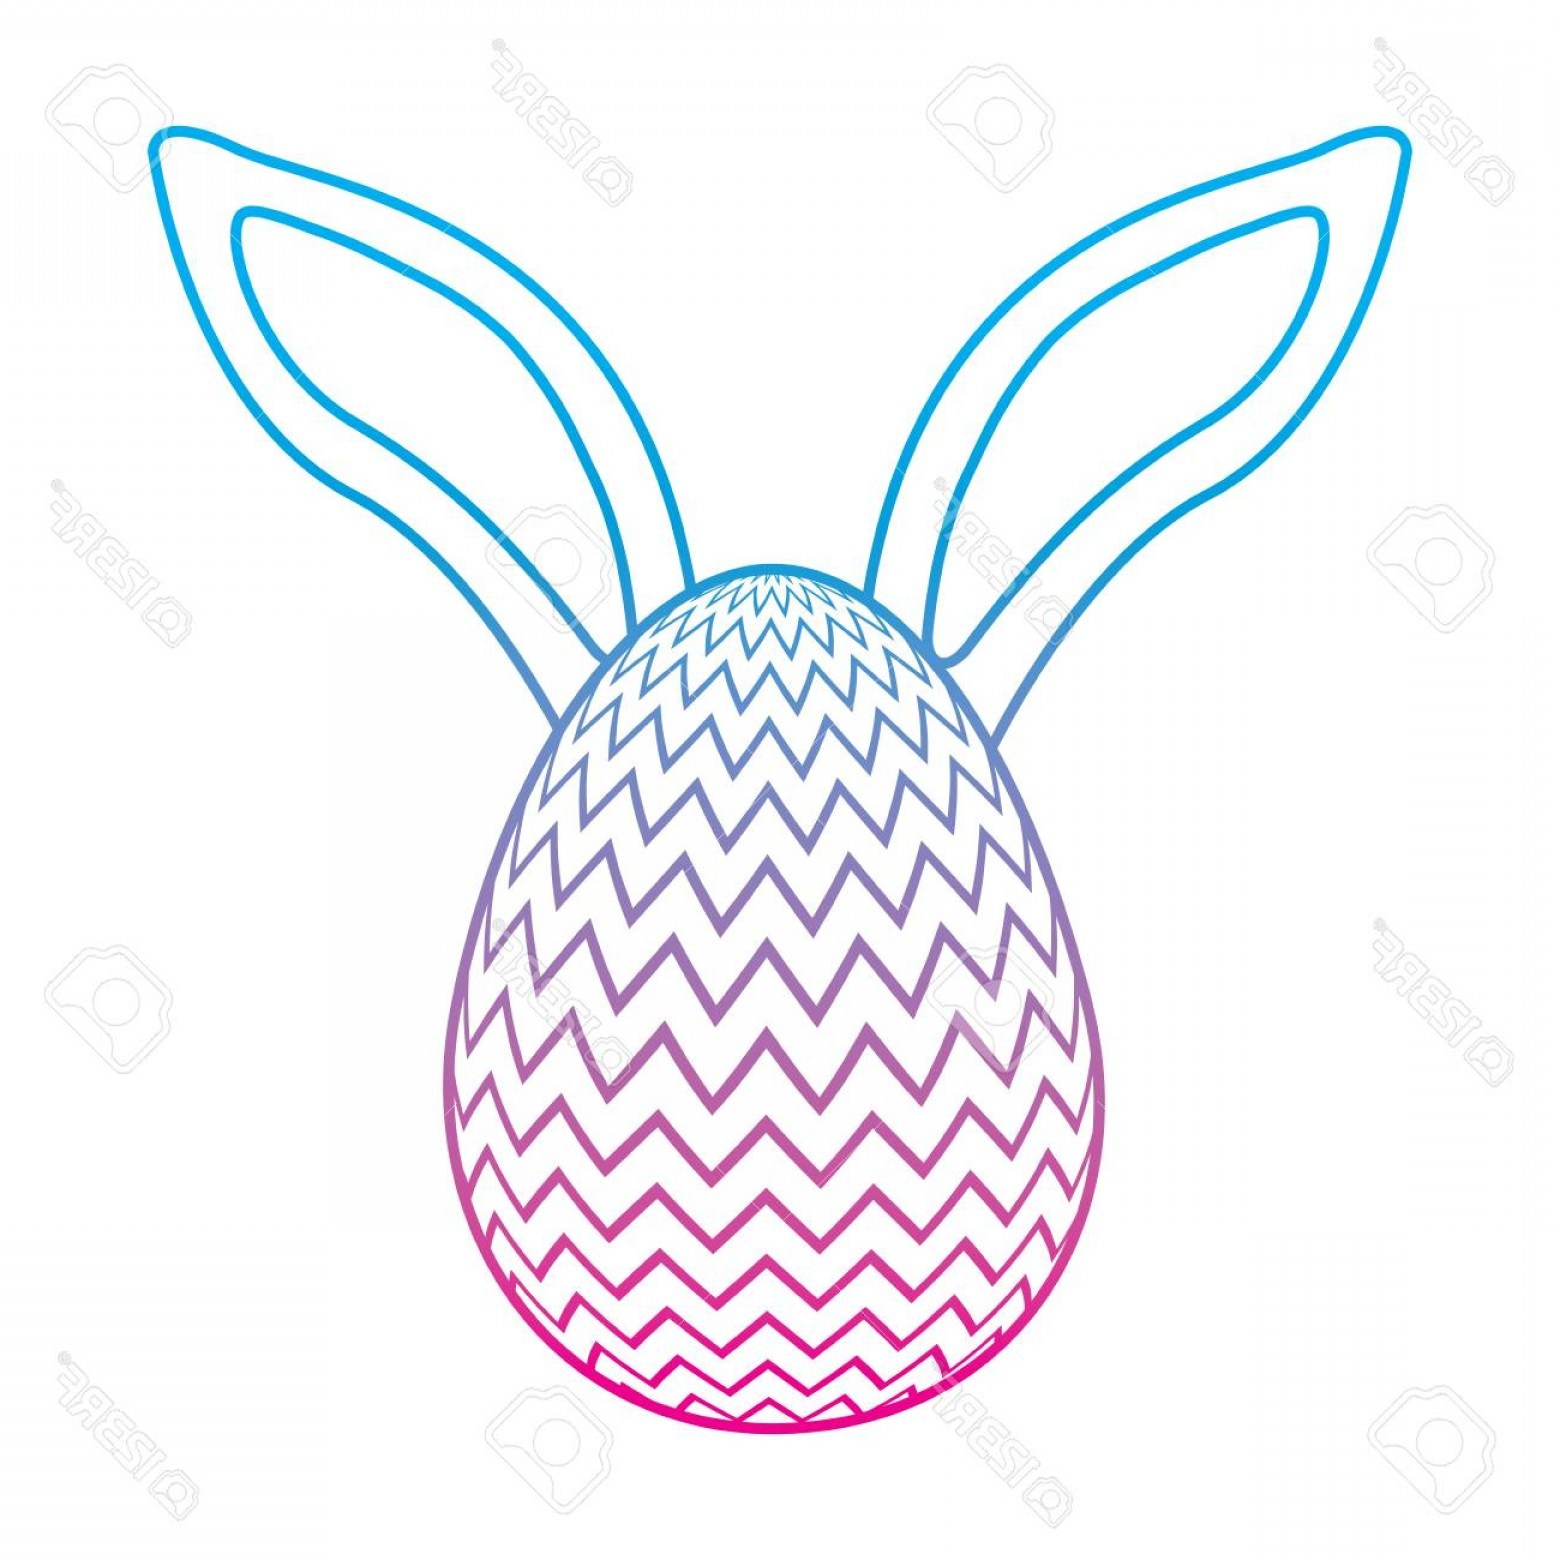 Vector RabbitEars: Photostock Vector Easter Egg With Rabbit Ears Decoration Vector Illustration Degrade Color Line Image